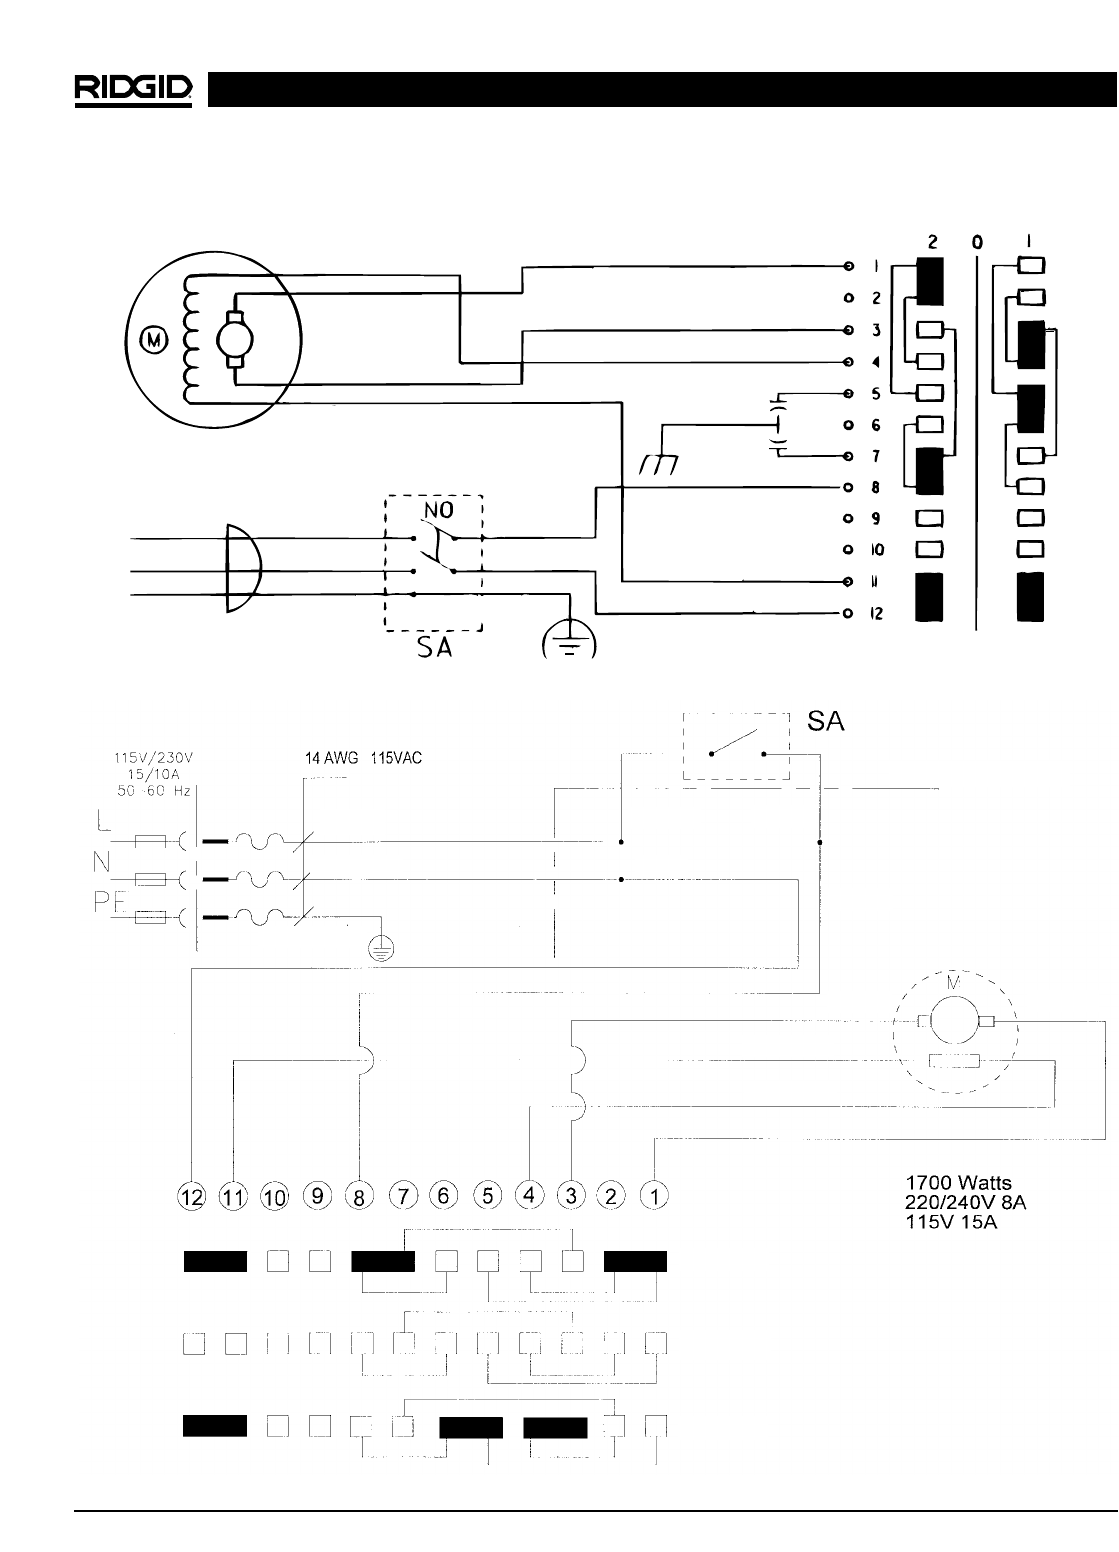 68b109bc 3c1f 445d 9958 08de9edaa37c bg14 page 20 of ridgid sewing machine 300 user guide manualsonline com ridgid r4513 wiring diagram at crackthecode.co